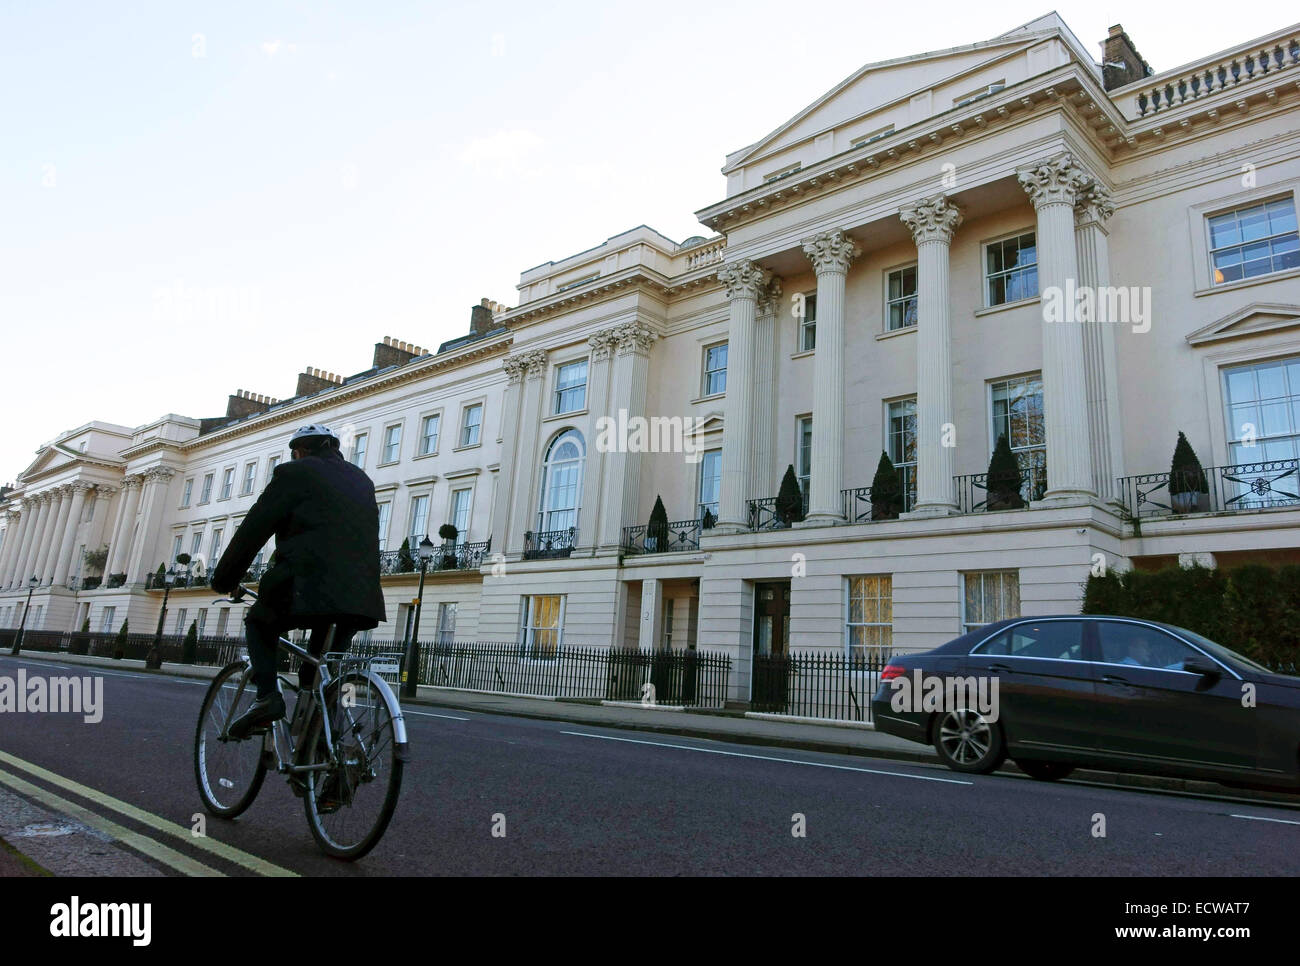 Qatari royal family reported to have paid £120m for three huge houses in Cornwall Terrace, Regents Park, London - Stock Image